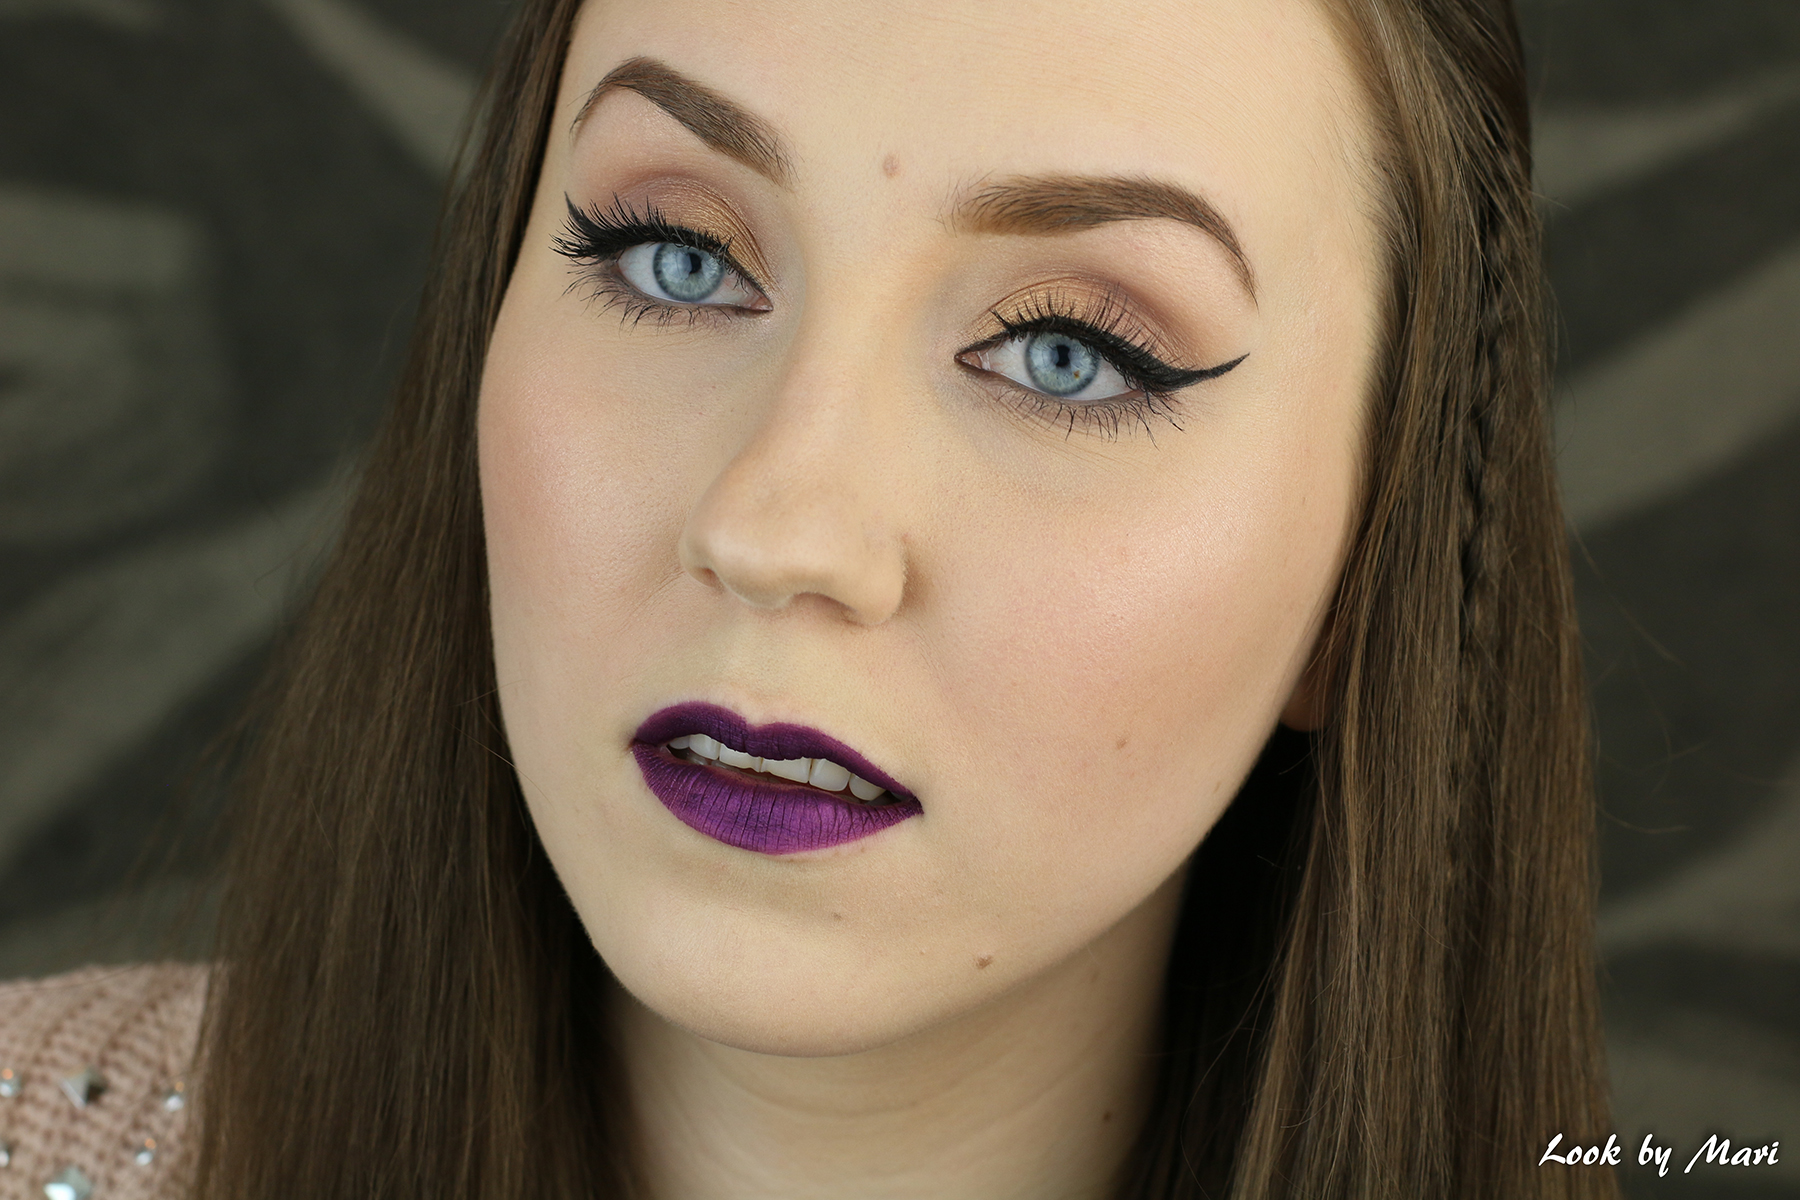 1 golden gold natural soft eye makeup lilac lips tutorial makeup look ideas inspo l.a. girl metal liquid lipstick